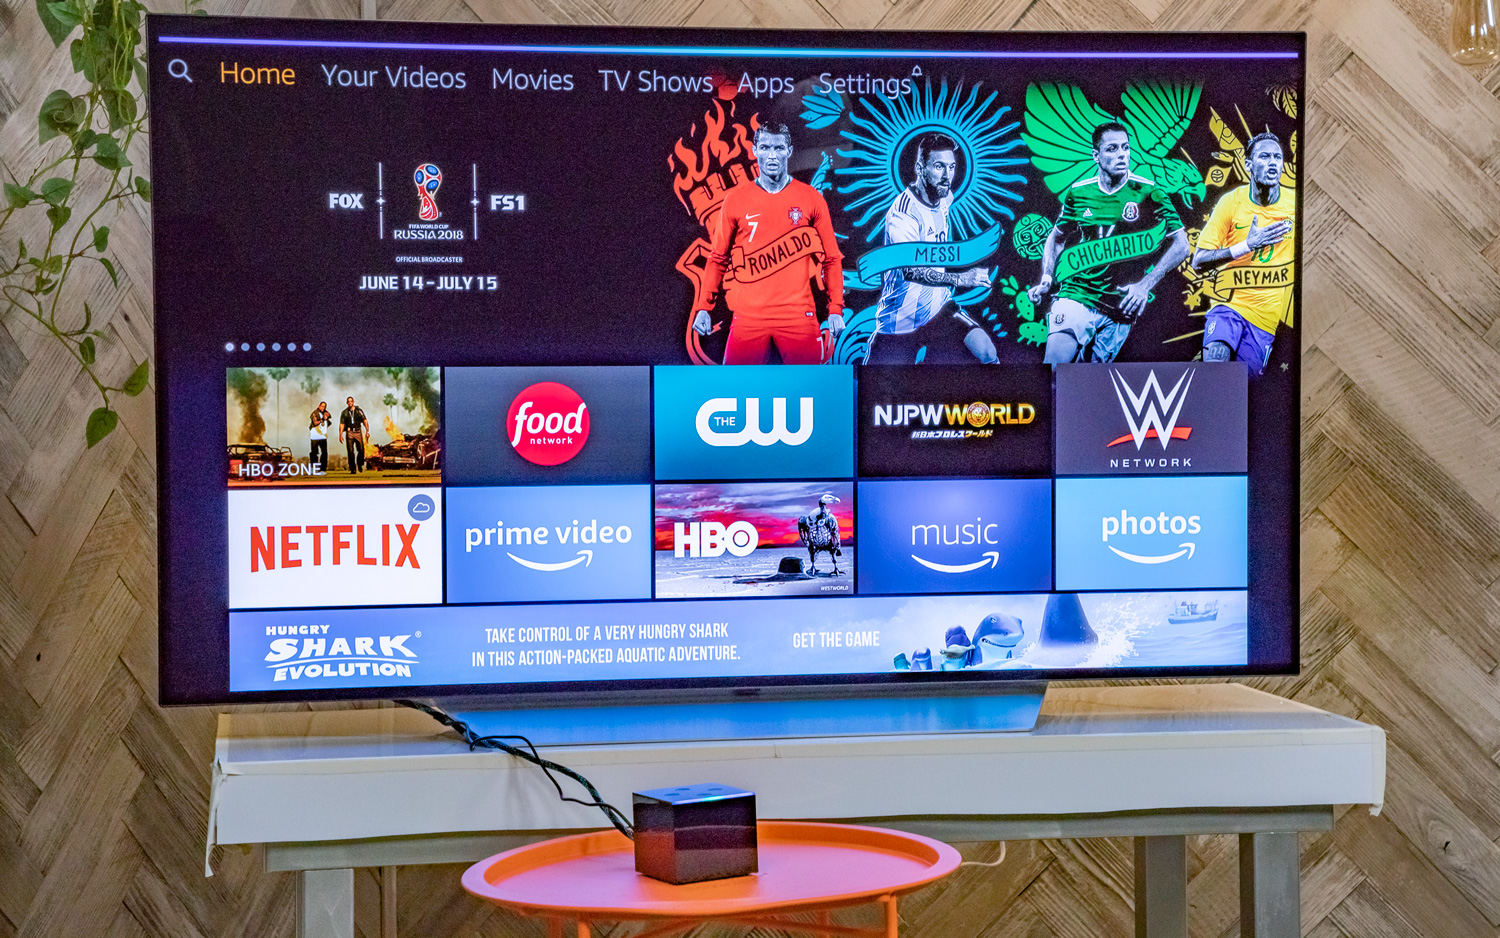 How to Install Apps on Fire TV Cube - How to Set Up and Use the Fire